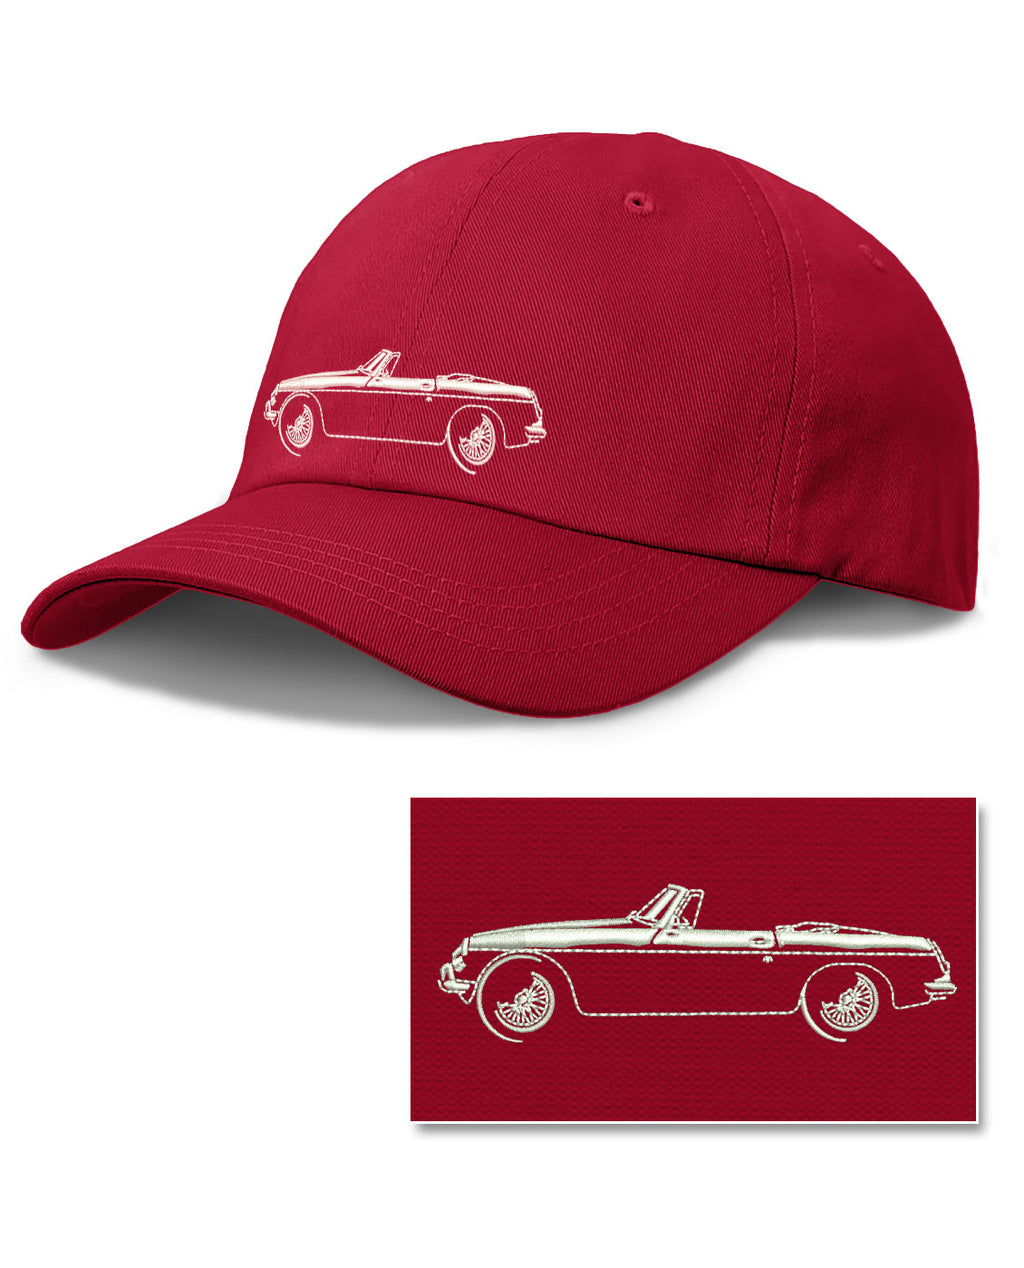 MG MGB Convertible Baseball Cap for Men & Women